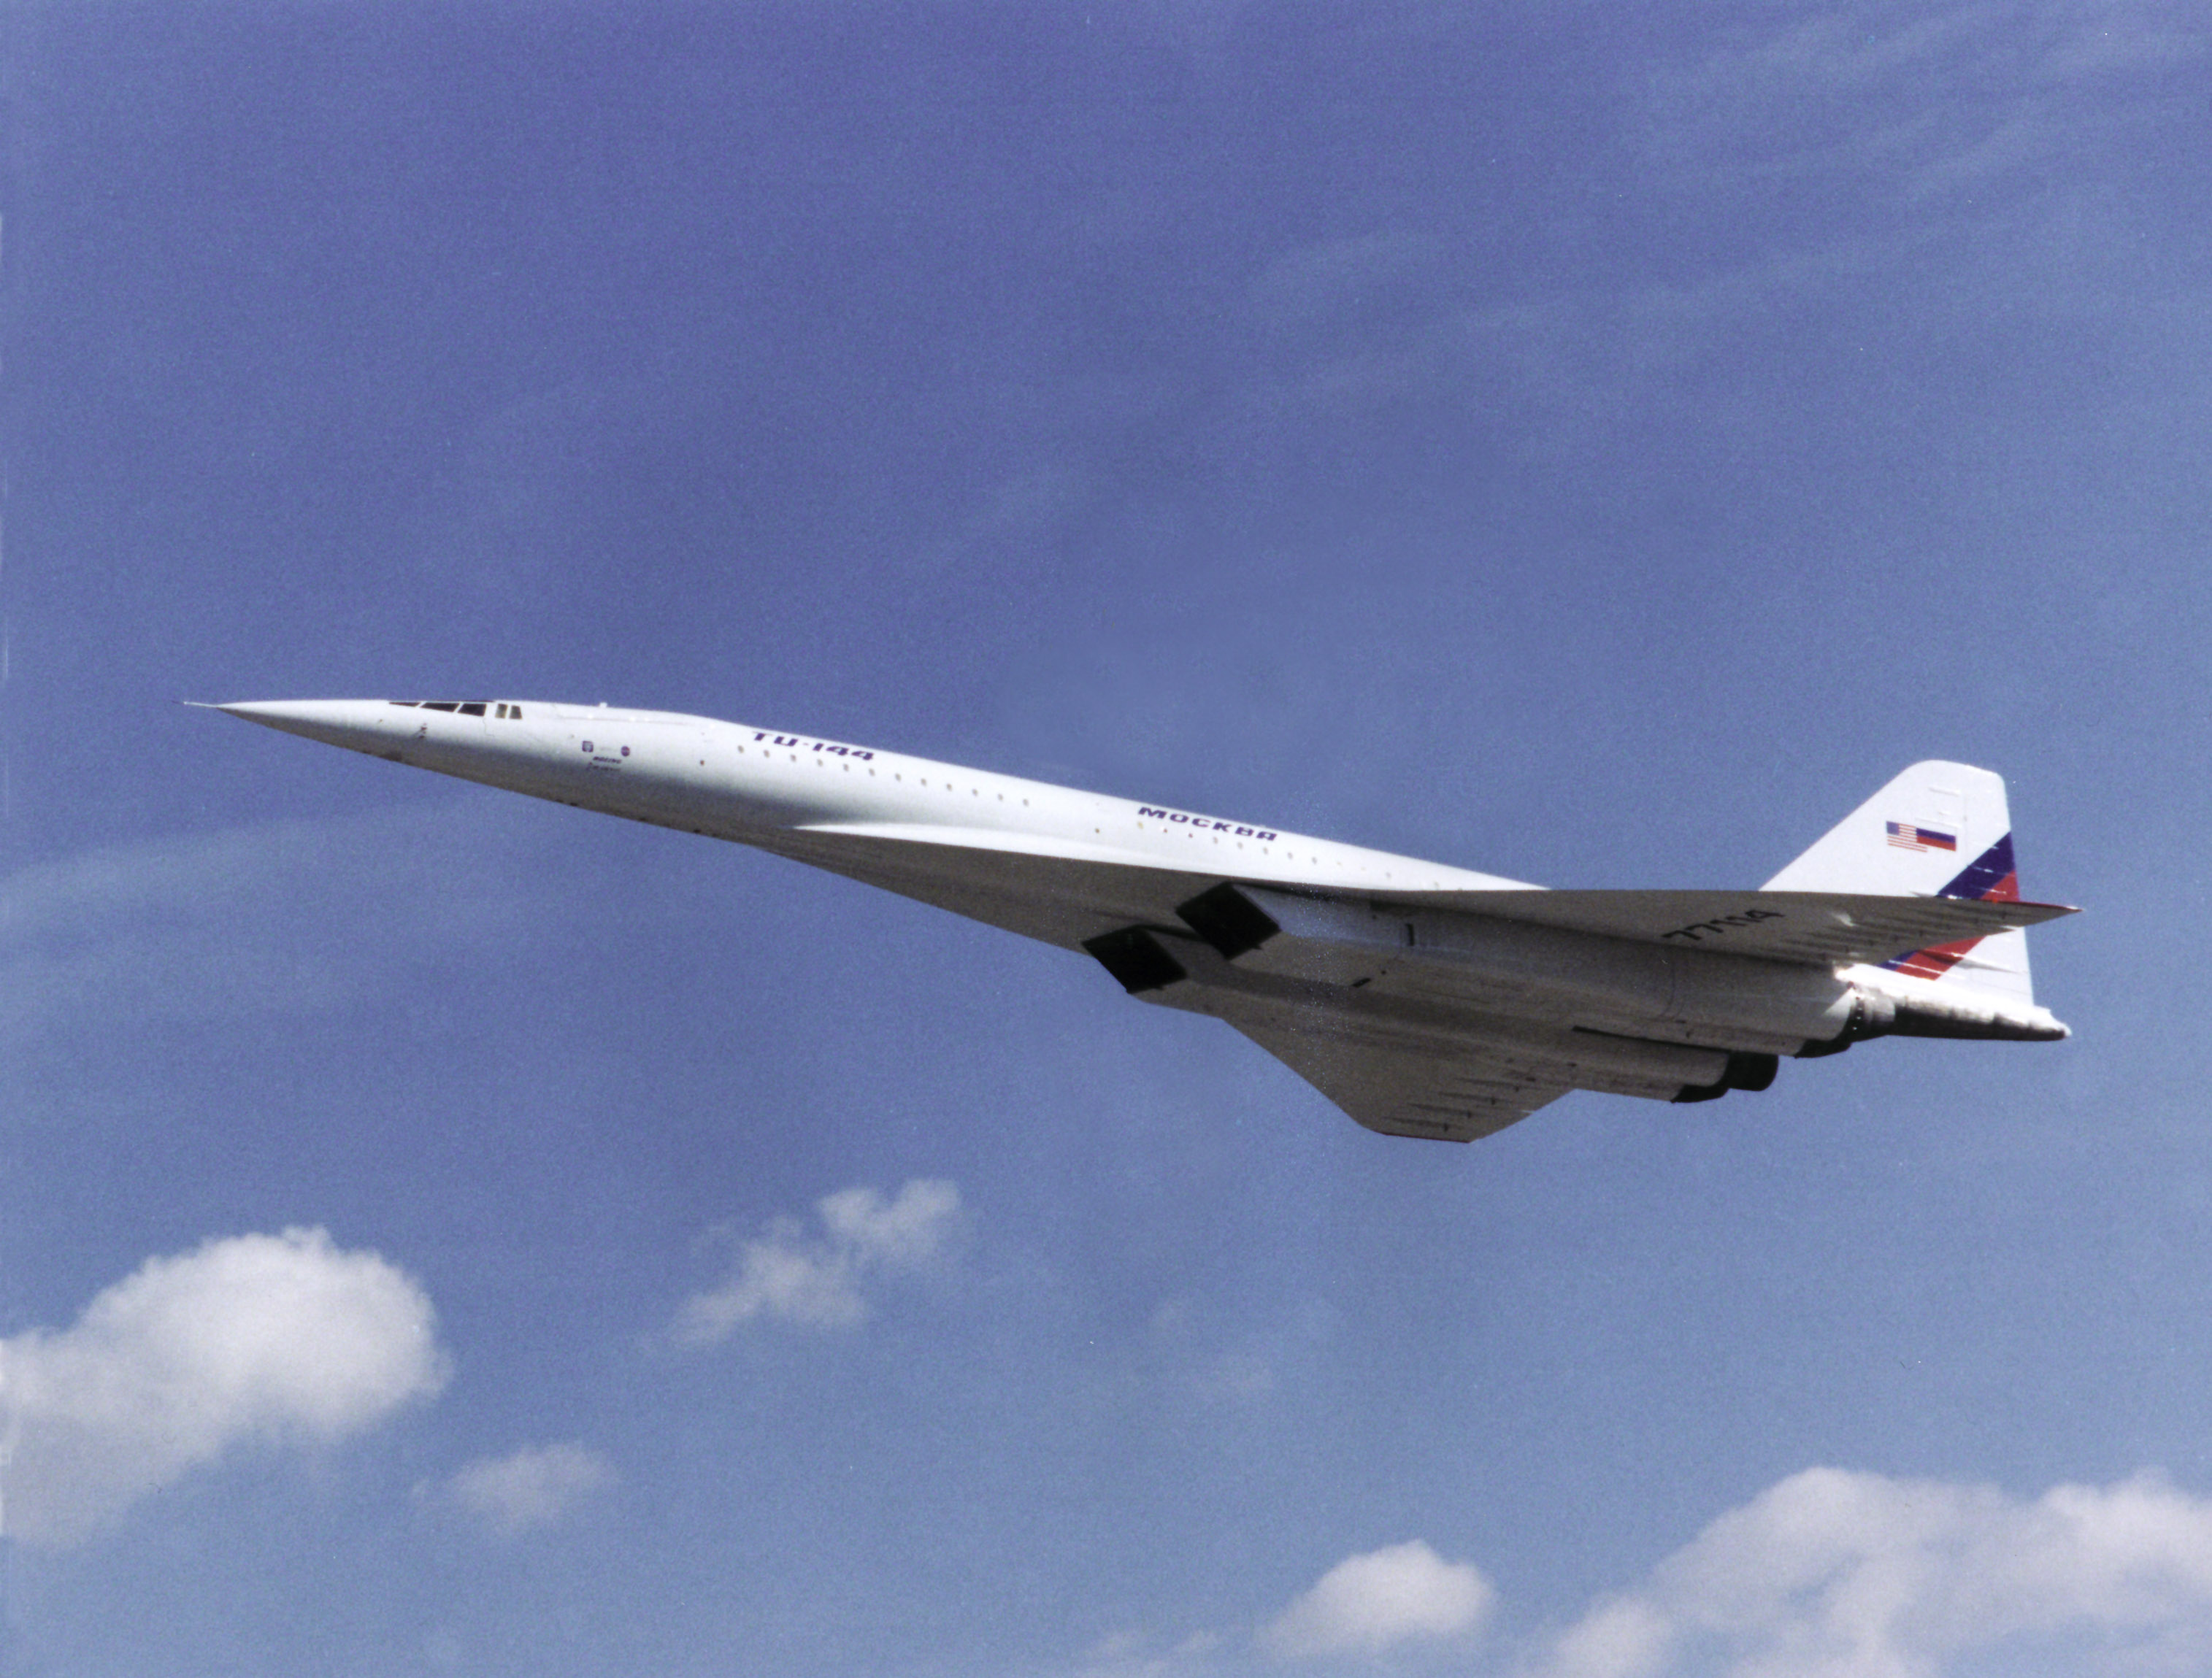 Tu-144LL_in_flight.jpg